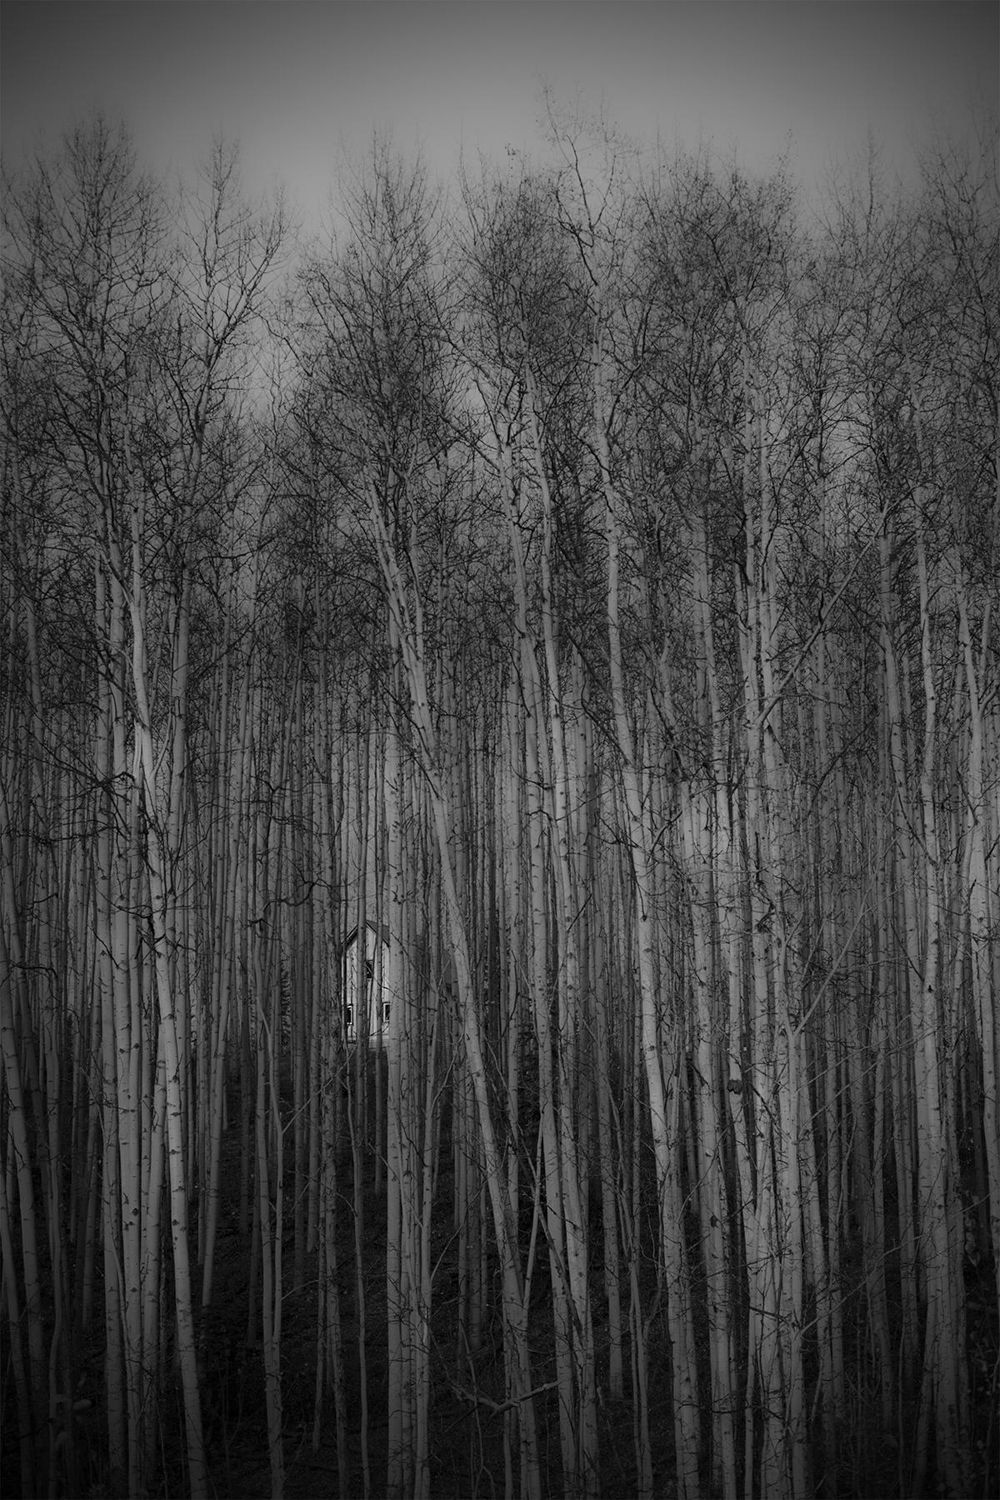 """House in the Birch Forest""          Kaitlin Wilson, Fairbanks           Best of Show"